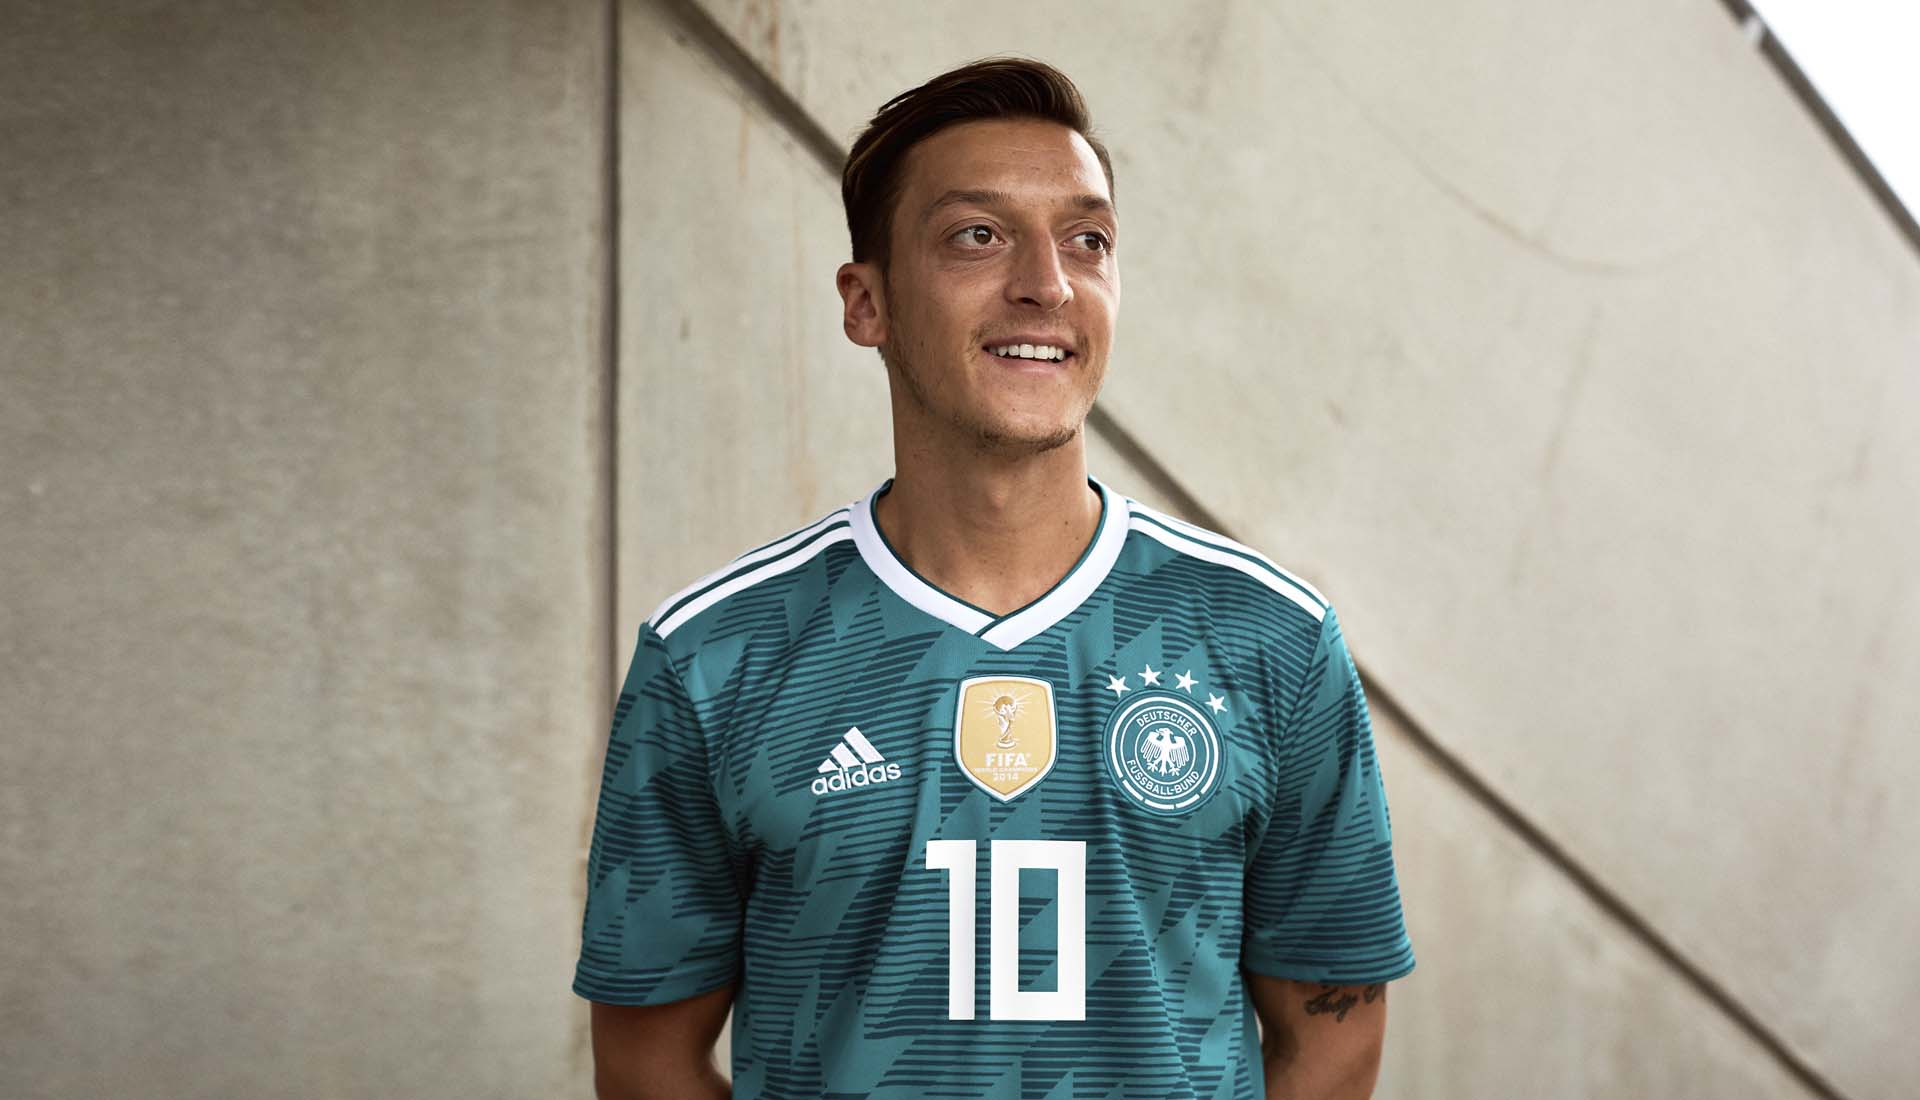 adidas Launch The Germany 2018 World Cup Away Shirt - SoccerBible 4bada66c2